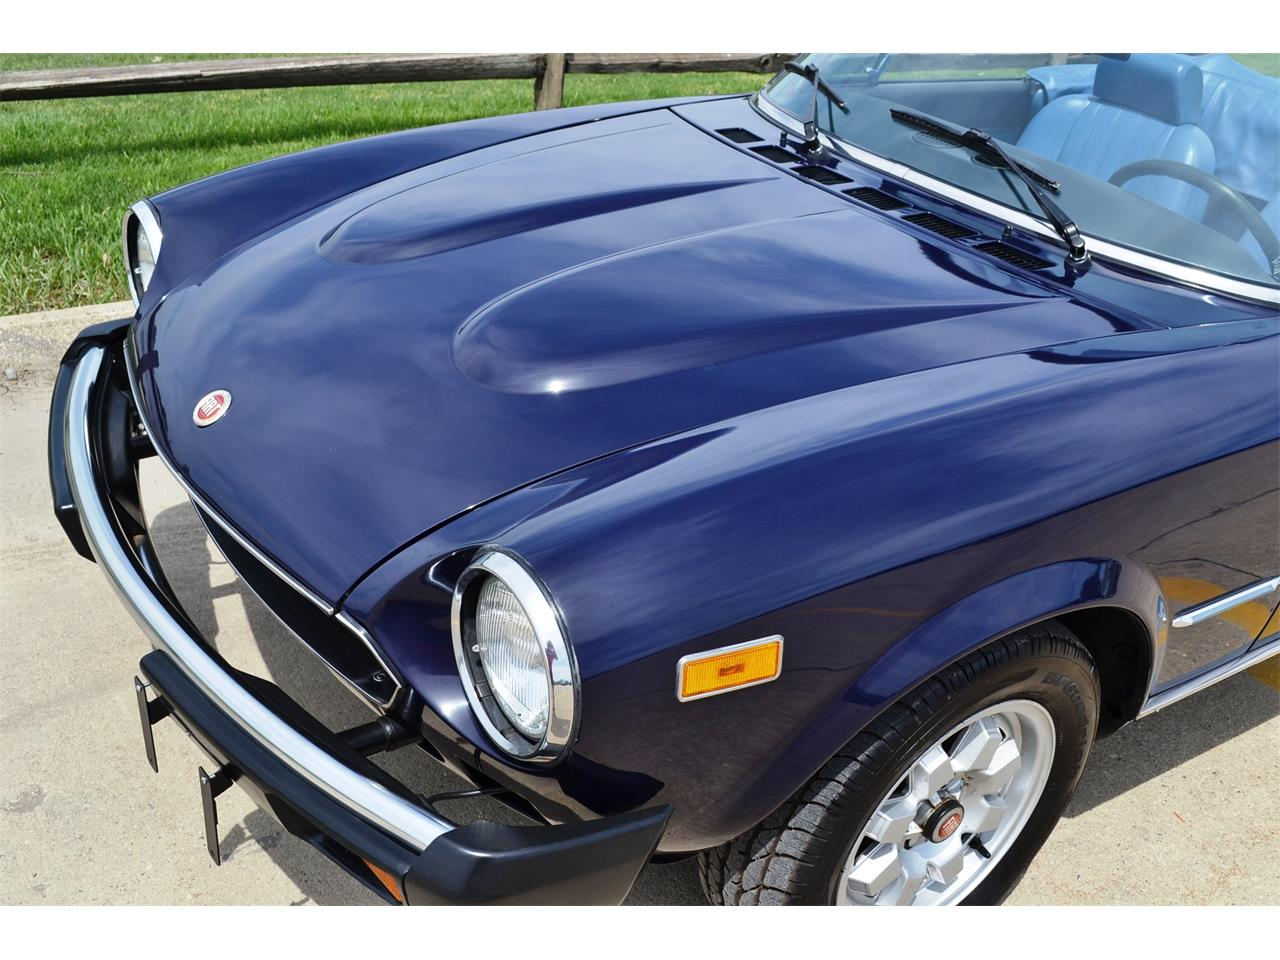 1981 Fiat Spider for sale in Barrington, IL – photo 21